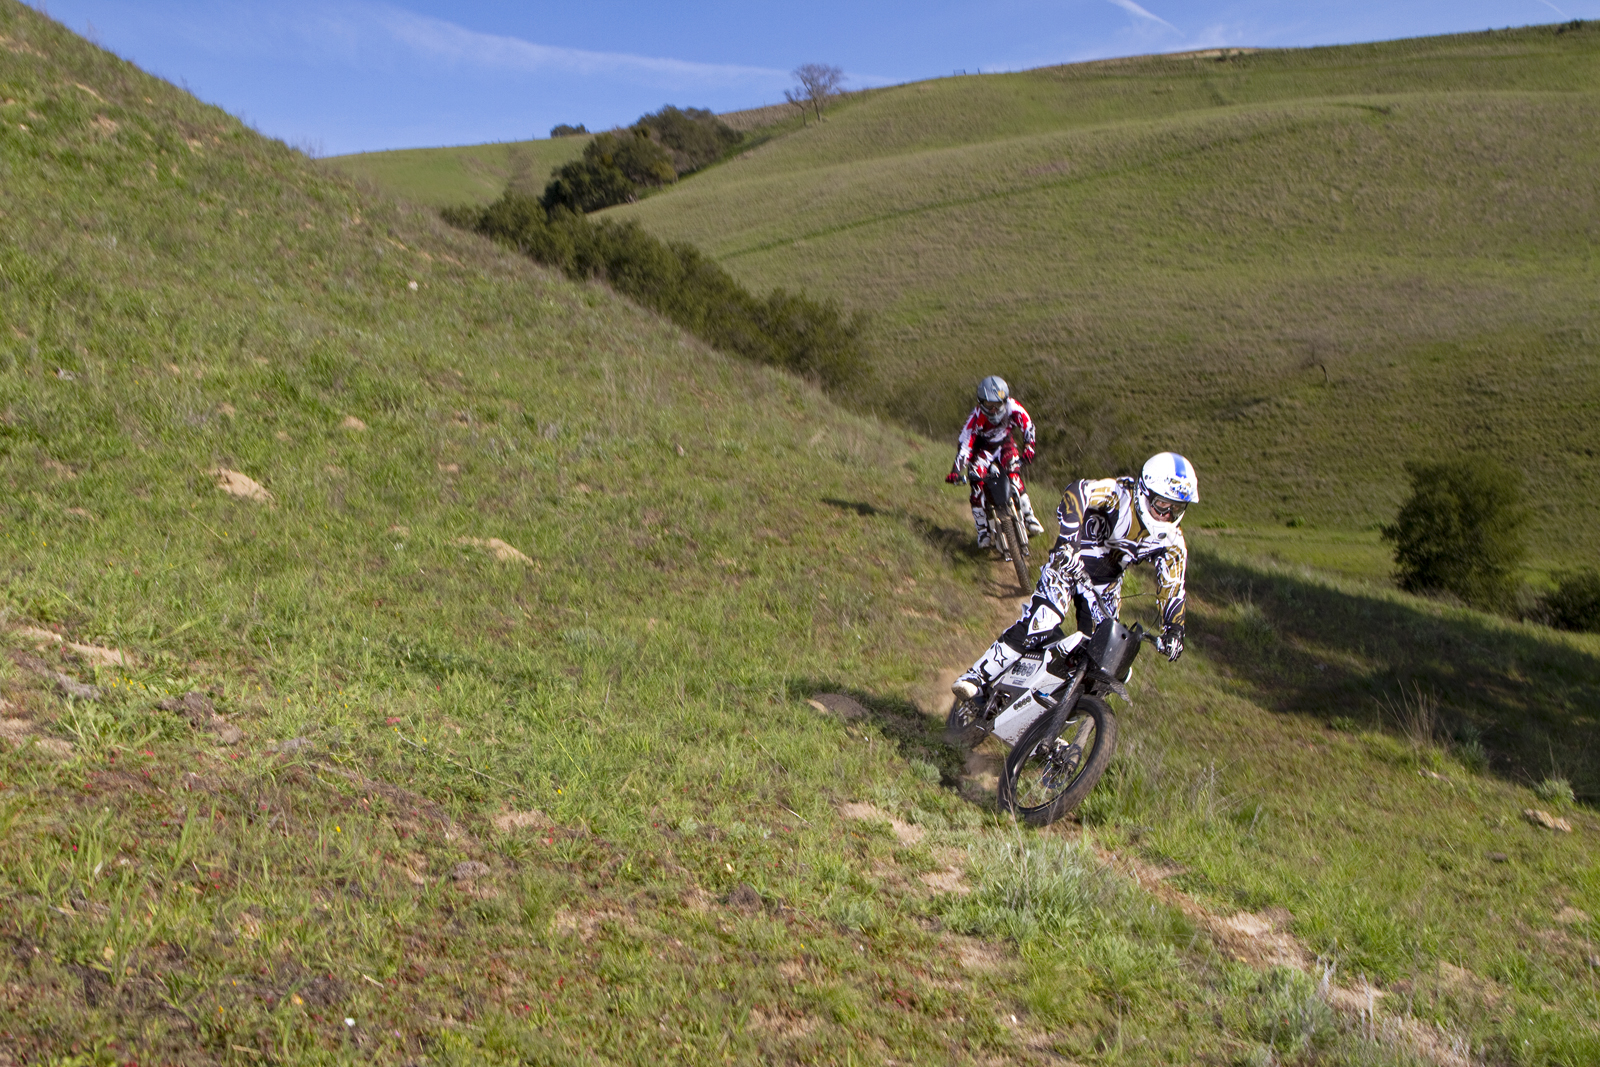 '.2010 Zero X Electric Motorcycle: Zaca Station - Two Single Track Riders.'